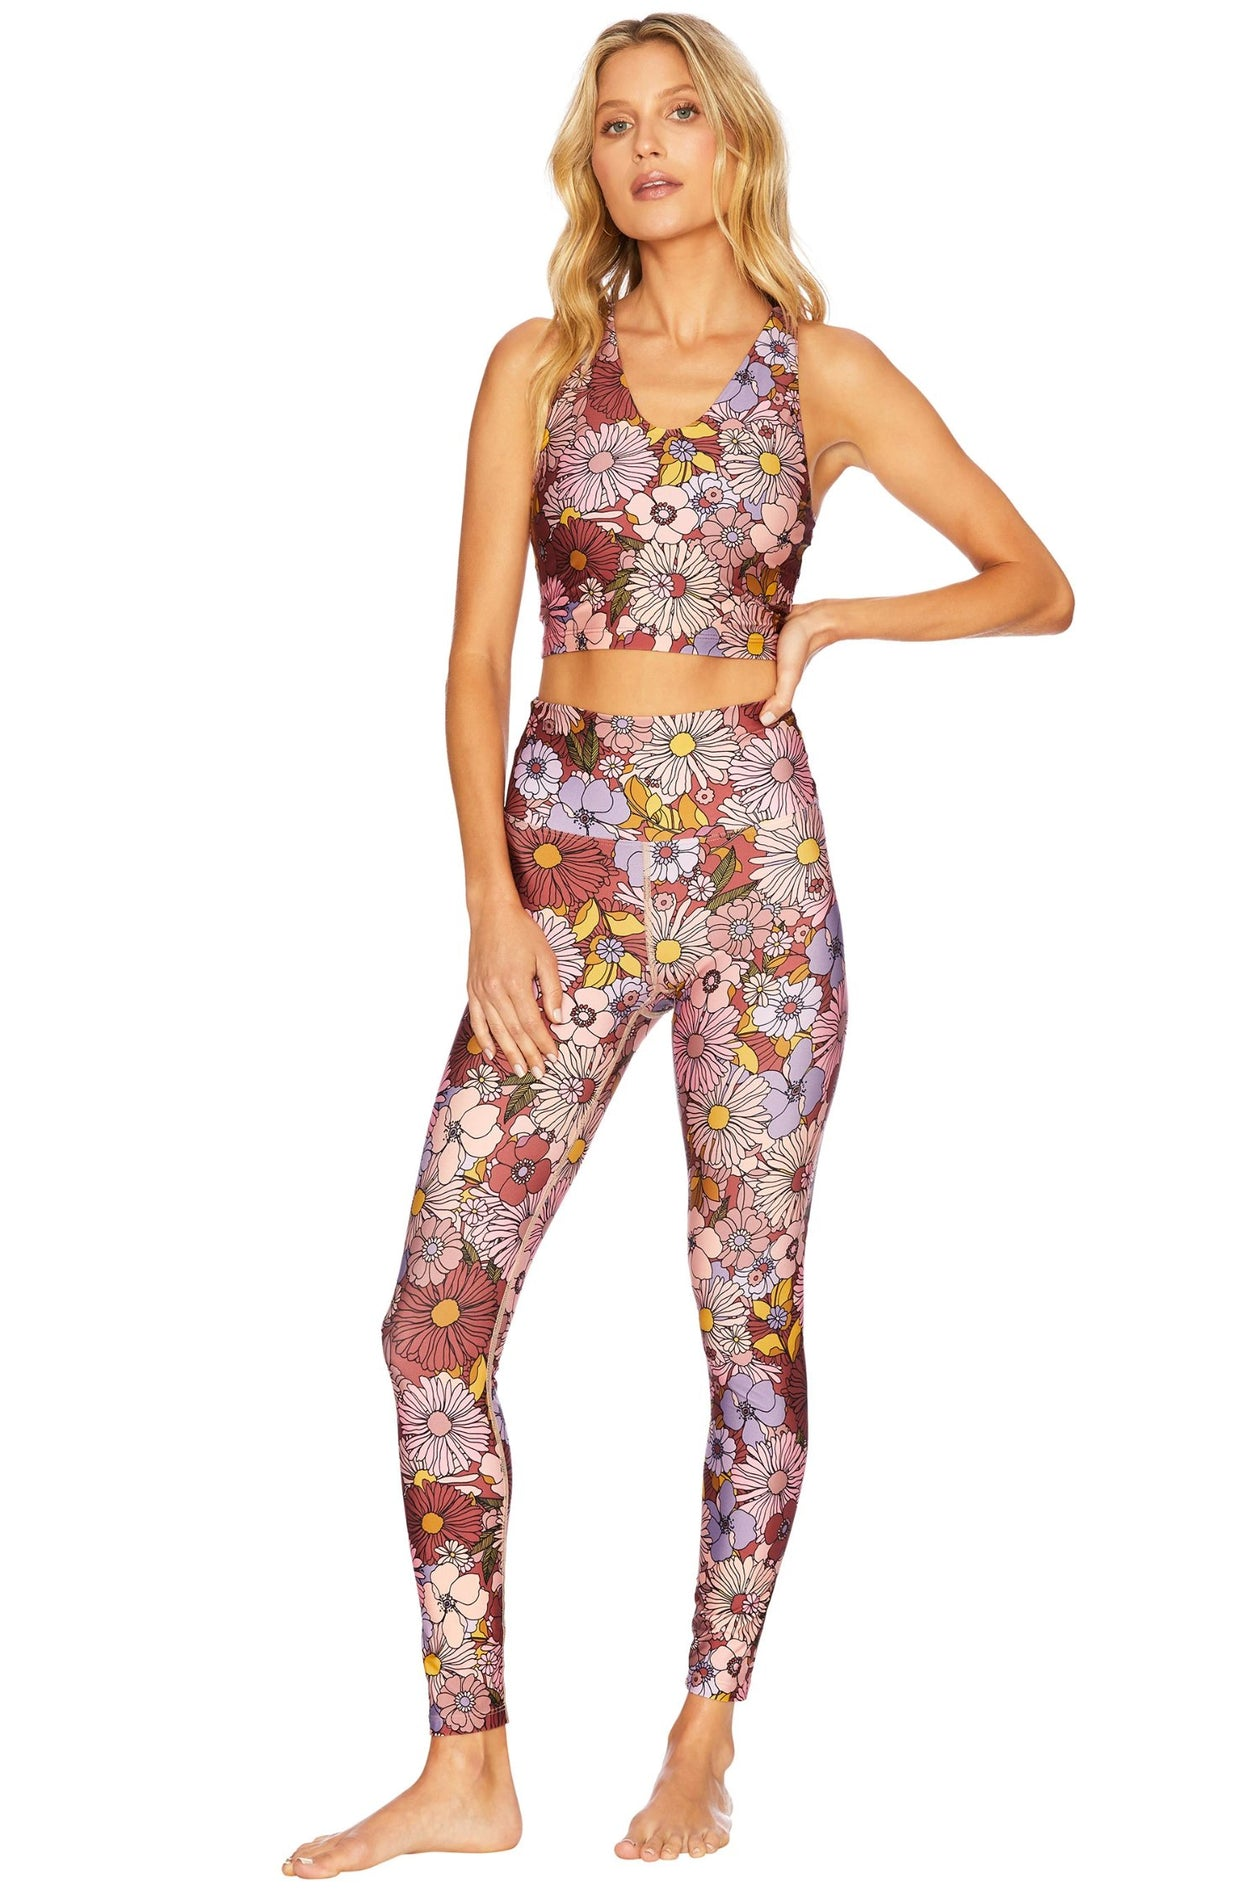 Piper Legging - Marsala Floral | Beach Riot - Fall 2020 - Women's Swimwear